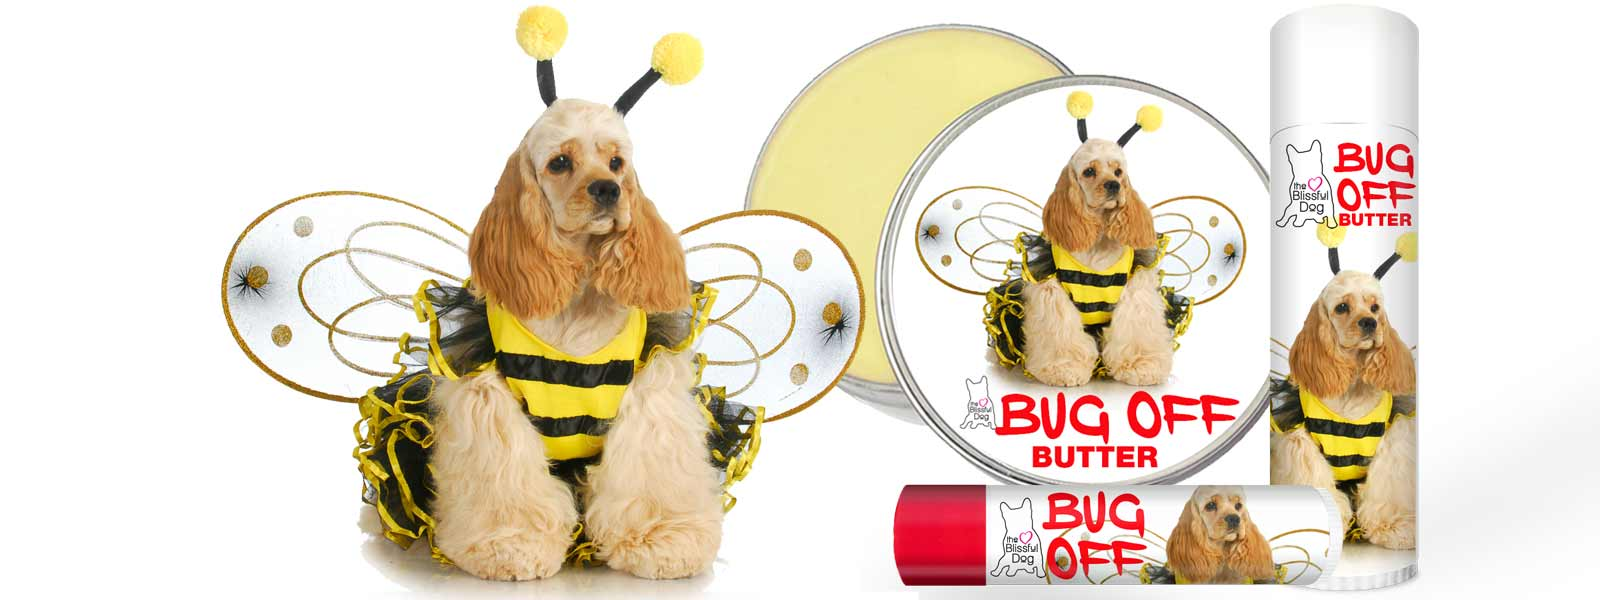 Bug Off Balm Cocker Spaniel